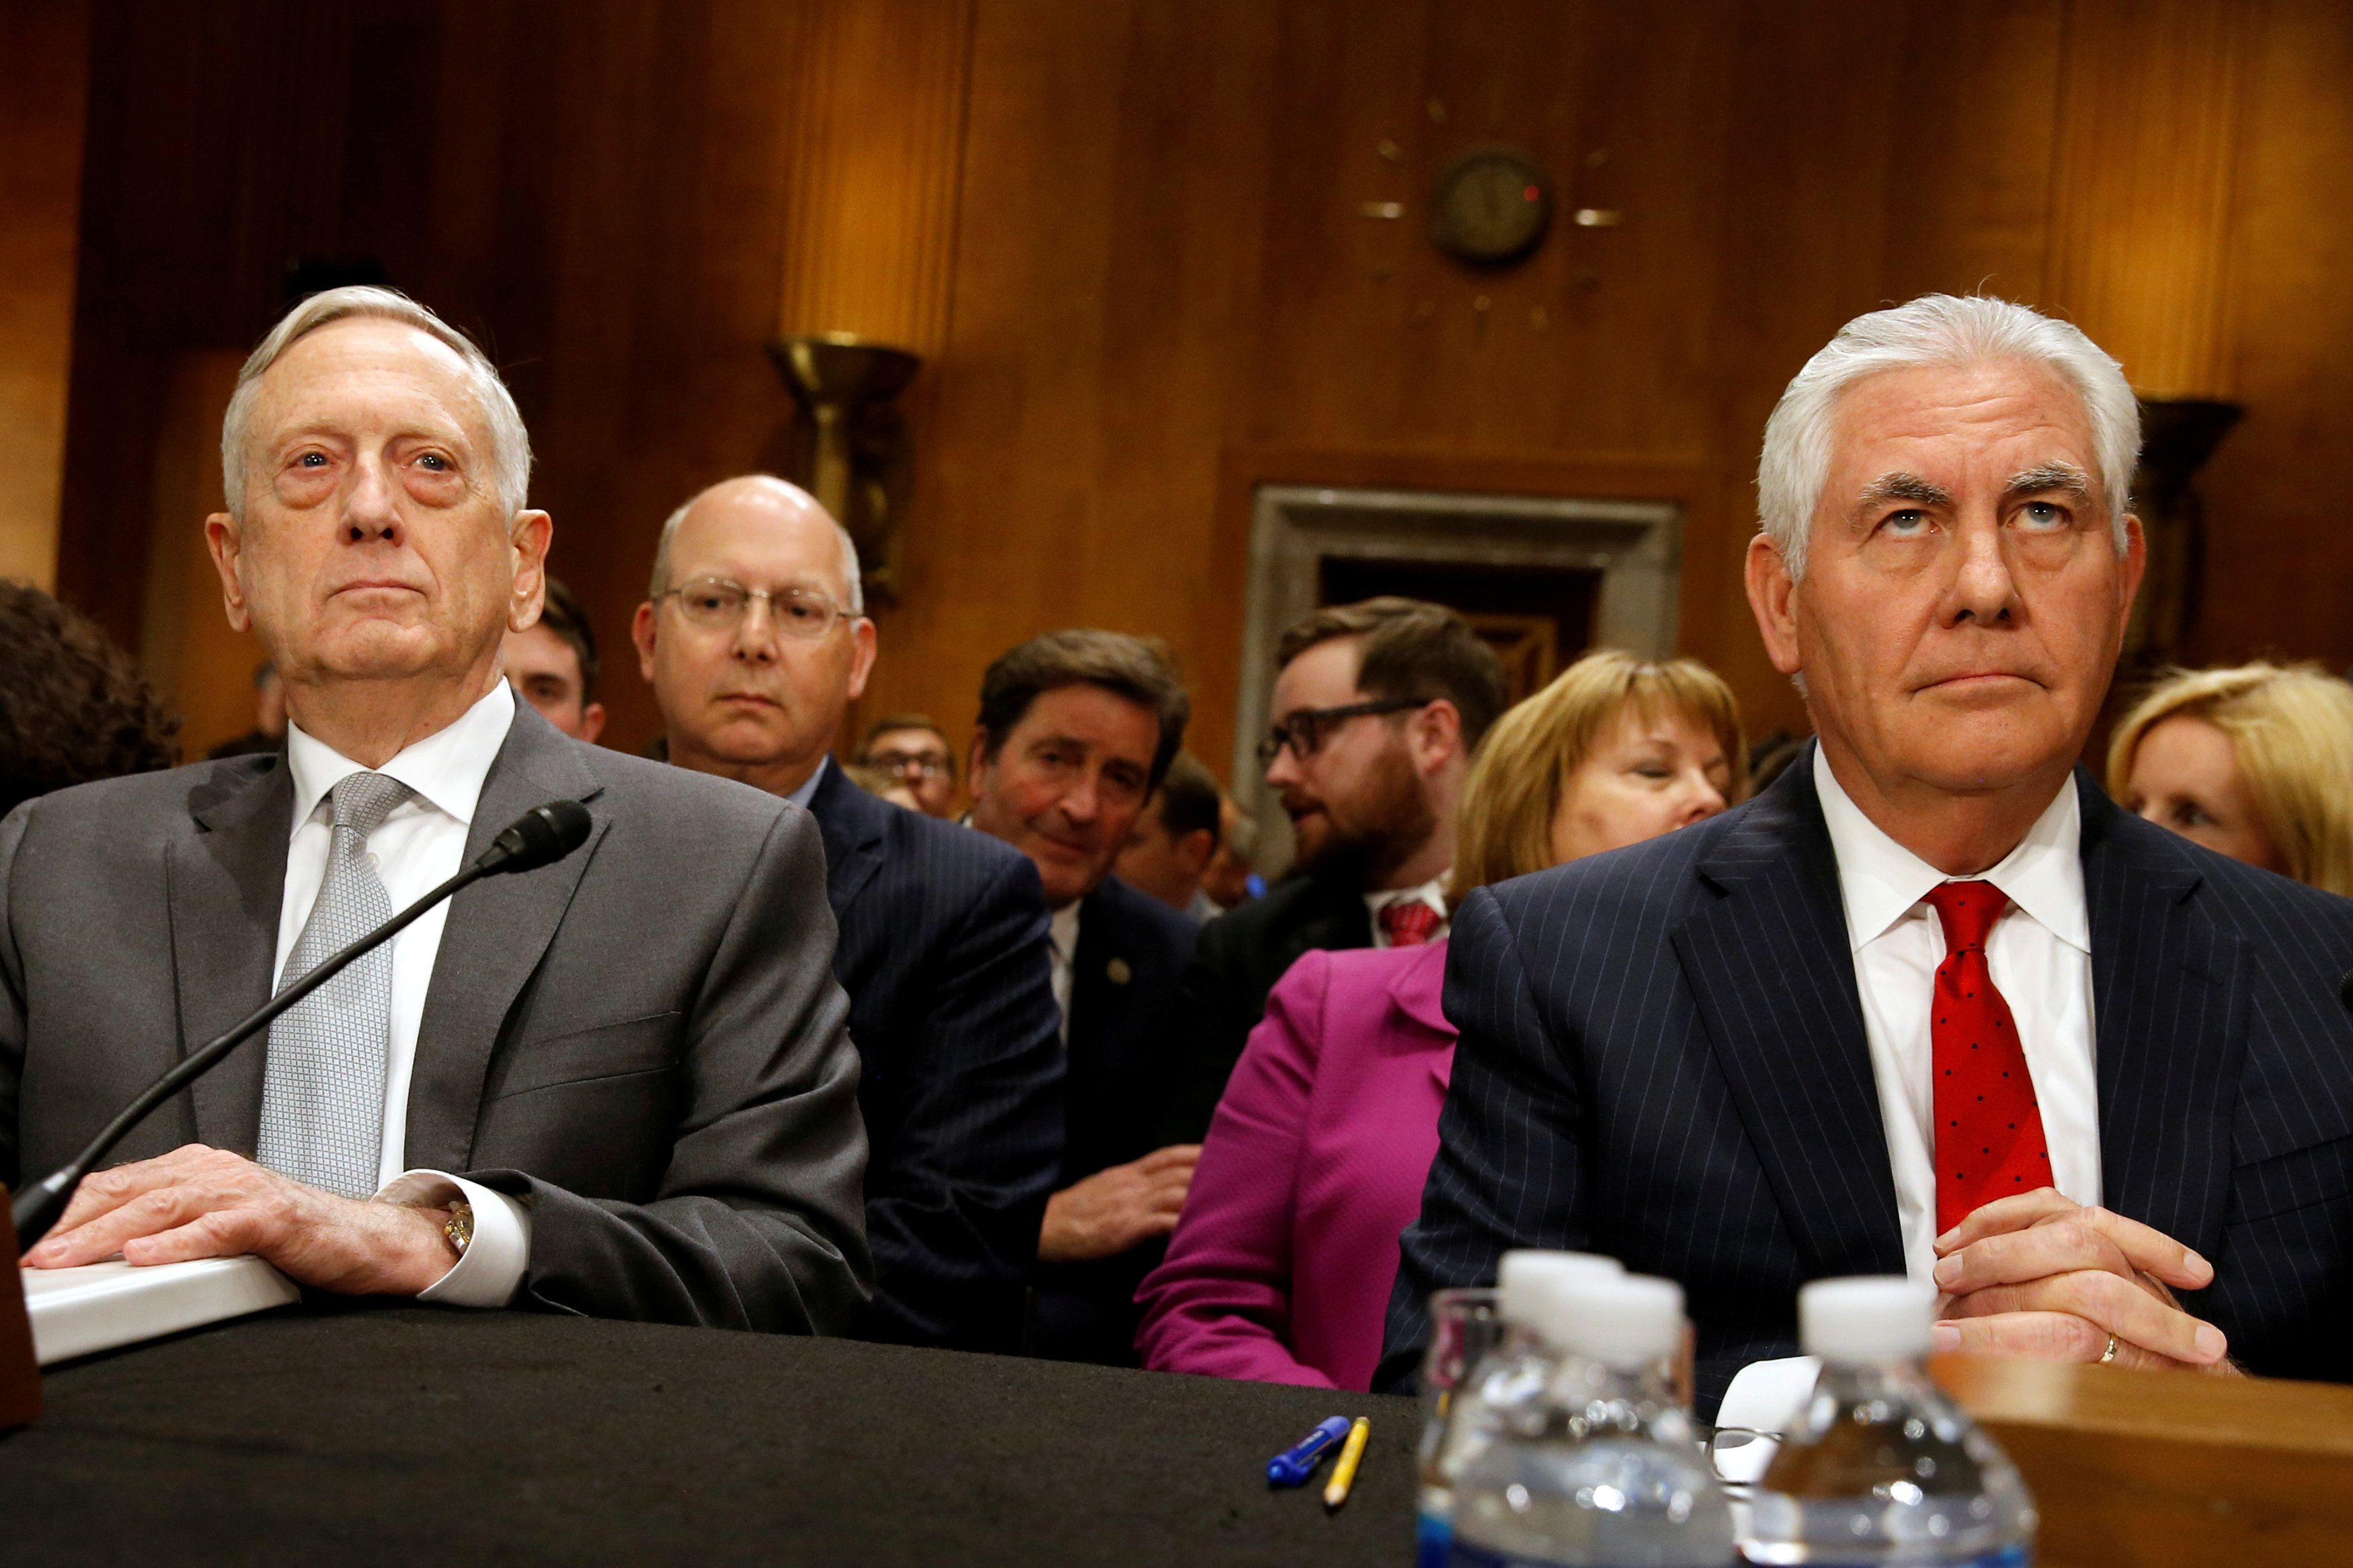 U.S. Defense Secretary James Mattis and Secretary of State Rex Tillerson testify about authorizations for the use of military force before the Senate Foreign Relations Committee on Capitol Hill in Washington, U.S. October 30, 2017.  REUTERS/Jonathan Ernst     TPX IMAGES OF THE DAY